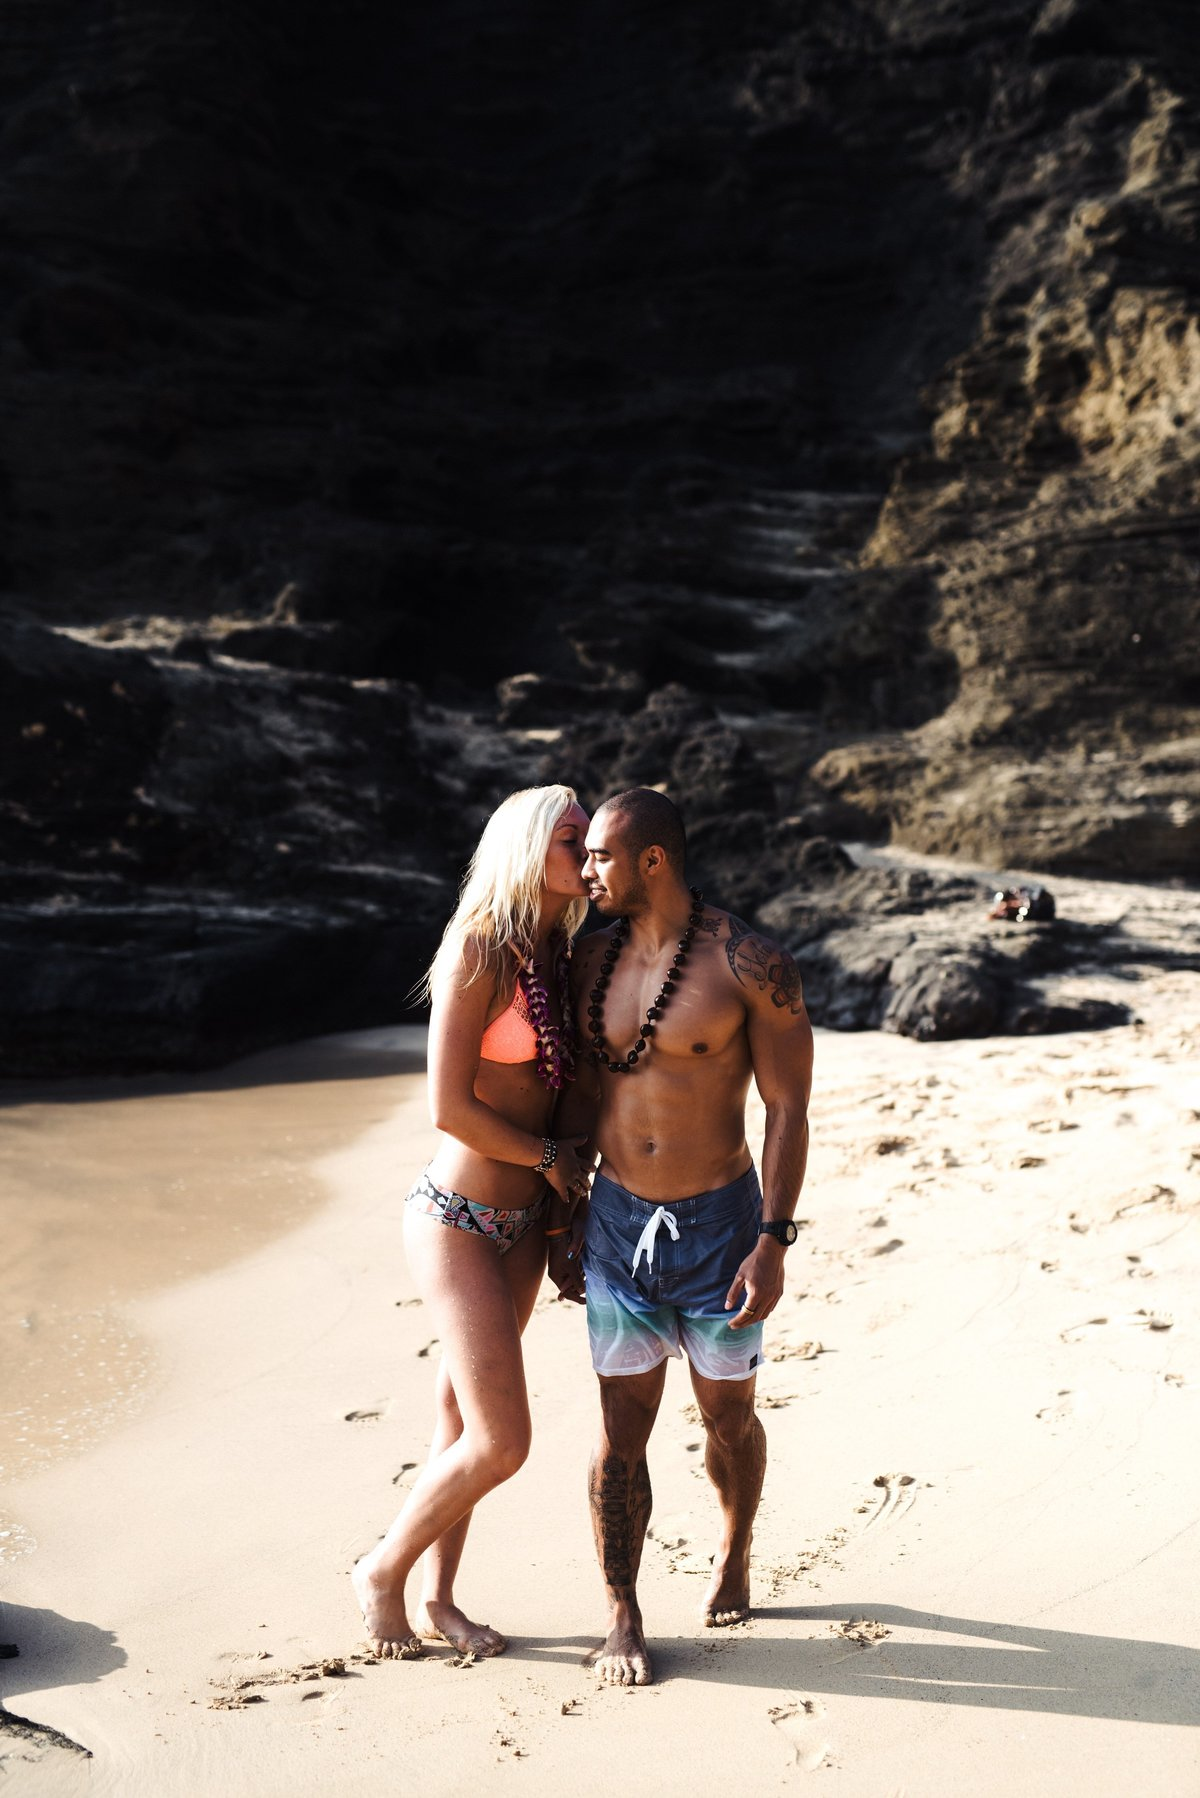 Eternity Beach Honolulu Hawaii Destination Engagement Session - 88